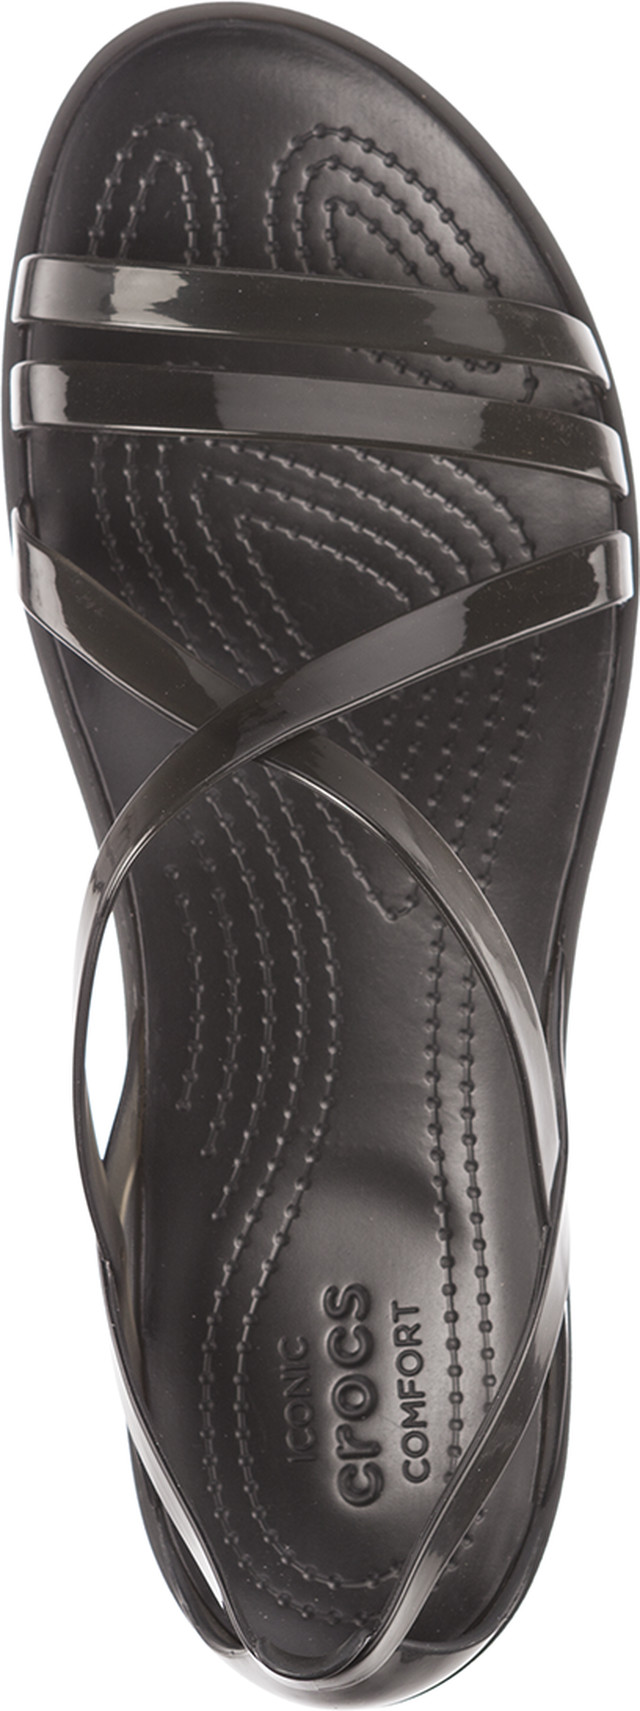 Sandały Crocs  <br/><small>ISABELLA STRAPPY SANDAL BLACK/LIGHT GREY </small>  204915-001